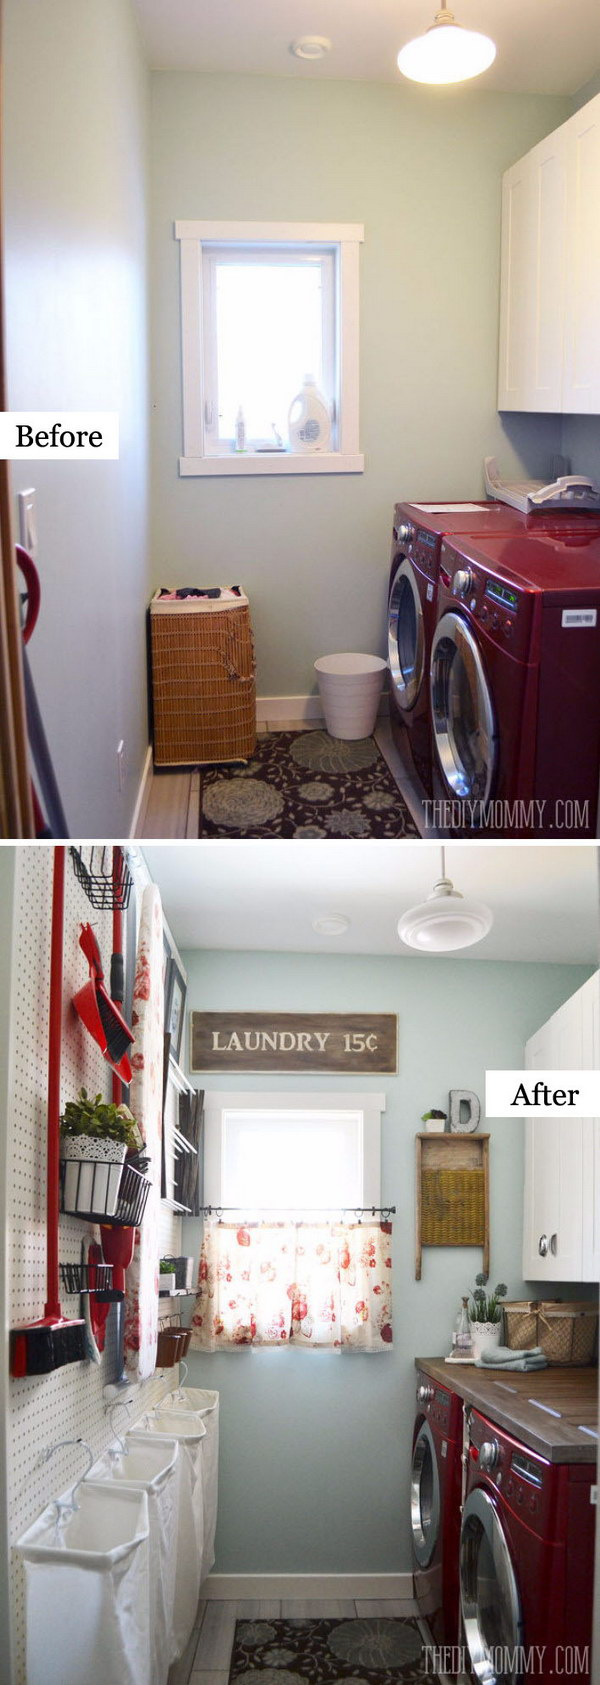 58-59-laundry-room-makeovers